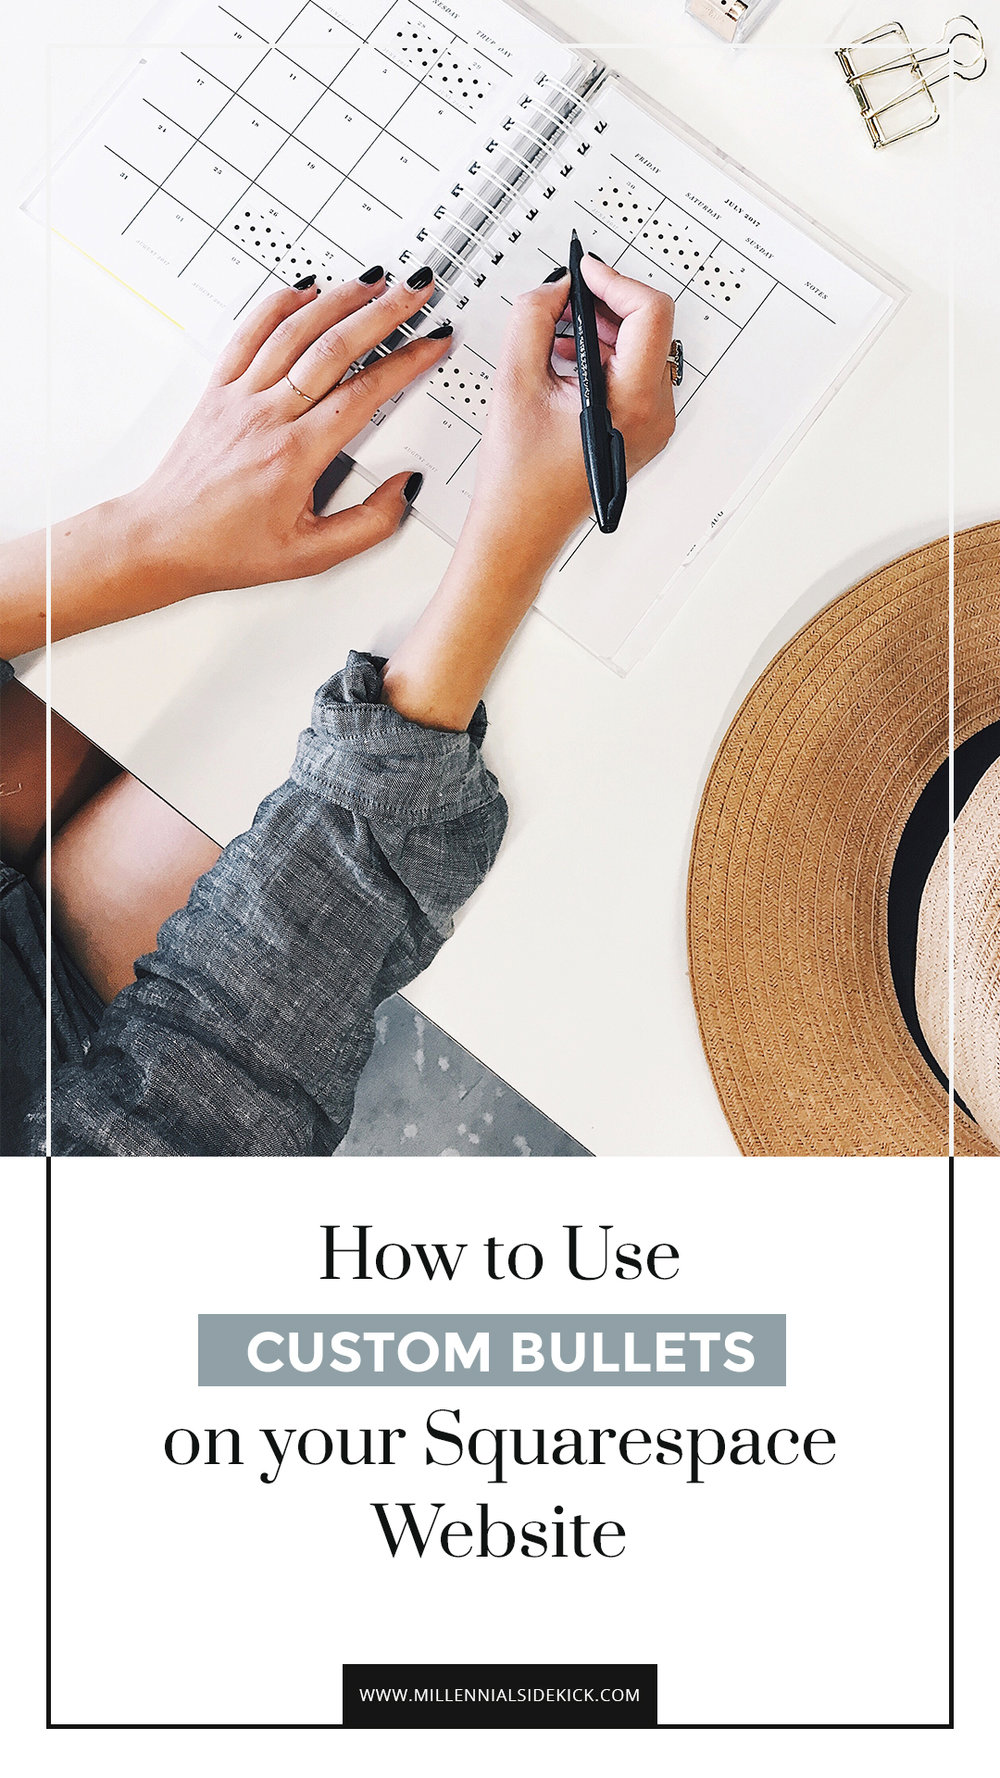 How to Use Custom Bullets on Your Squarespace Website.jpg